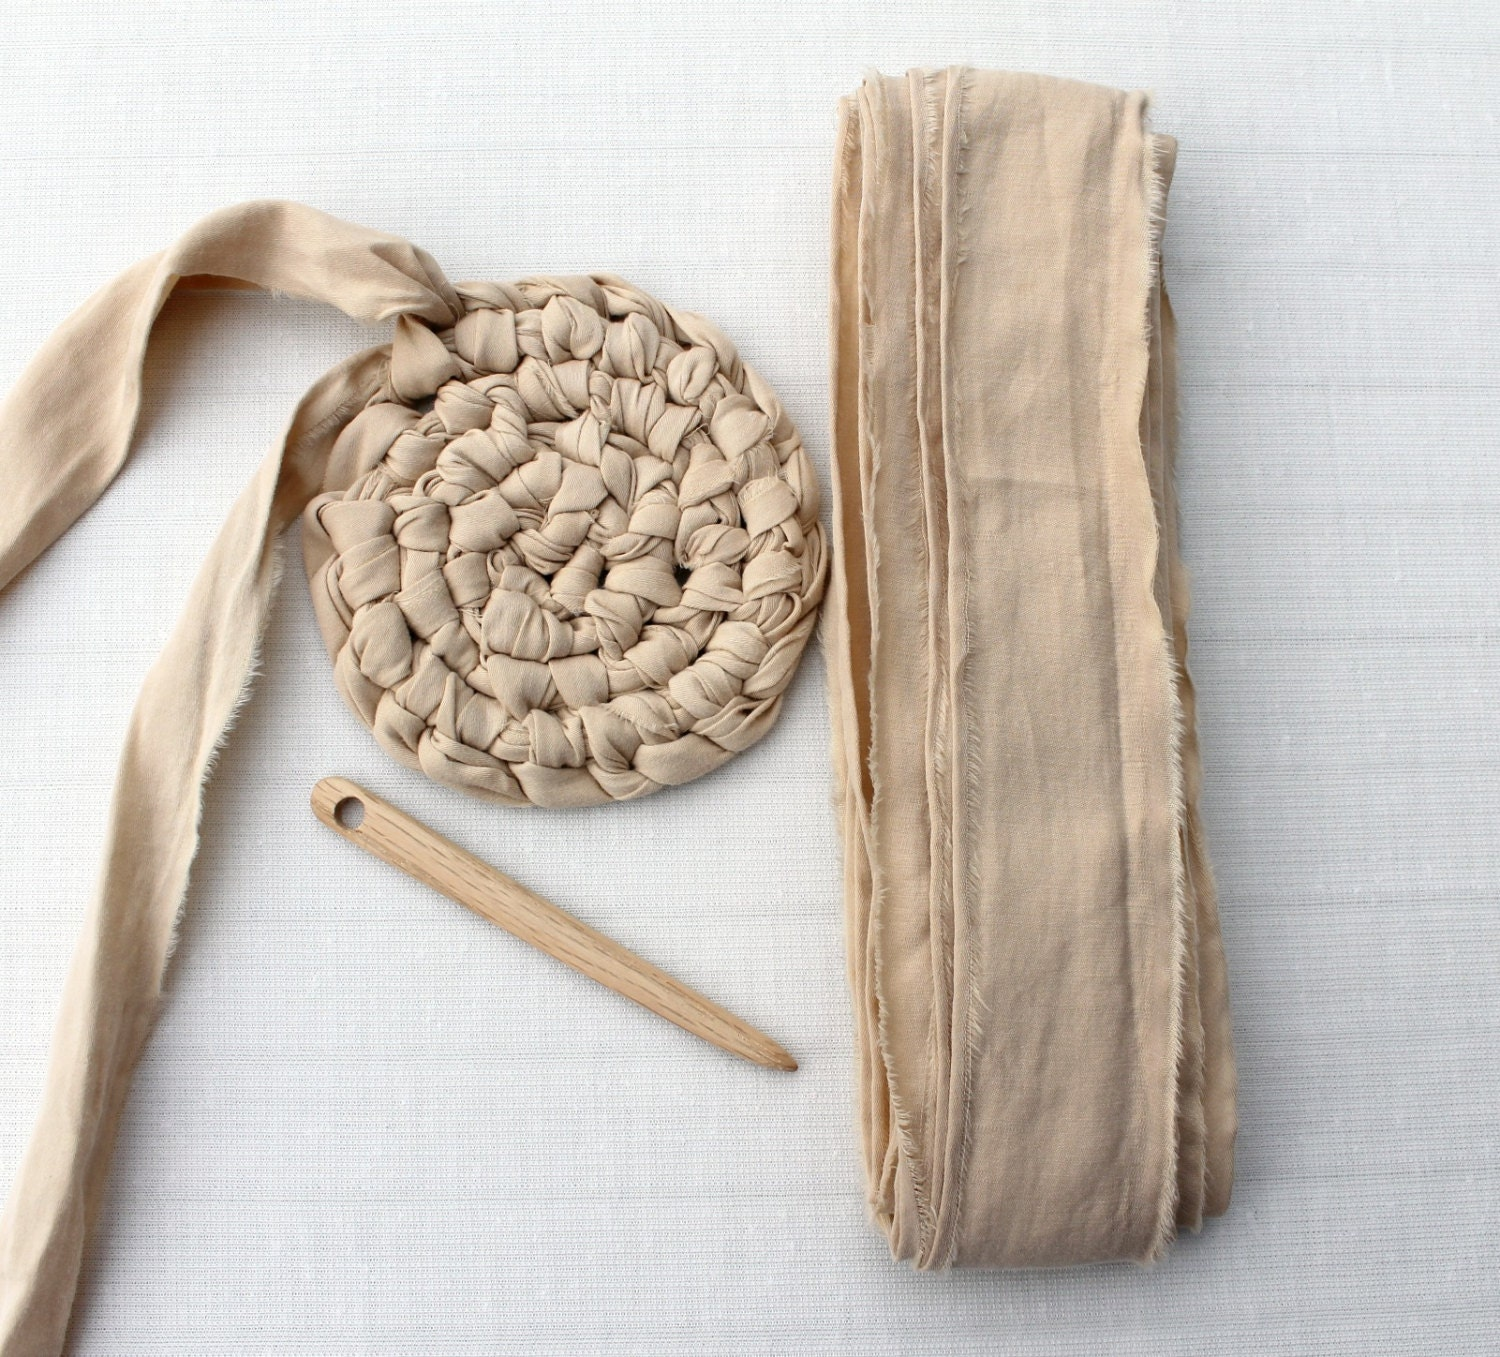 knotted rag rug instructions